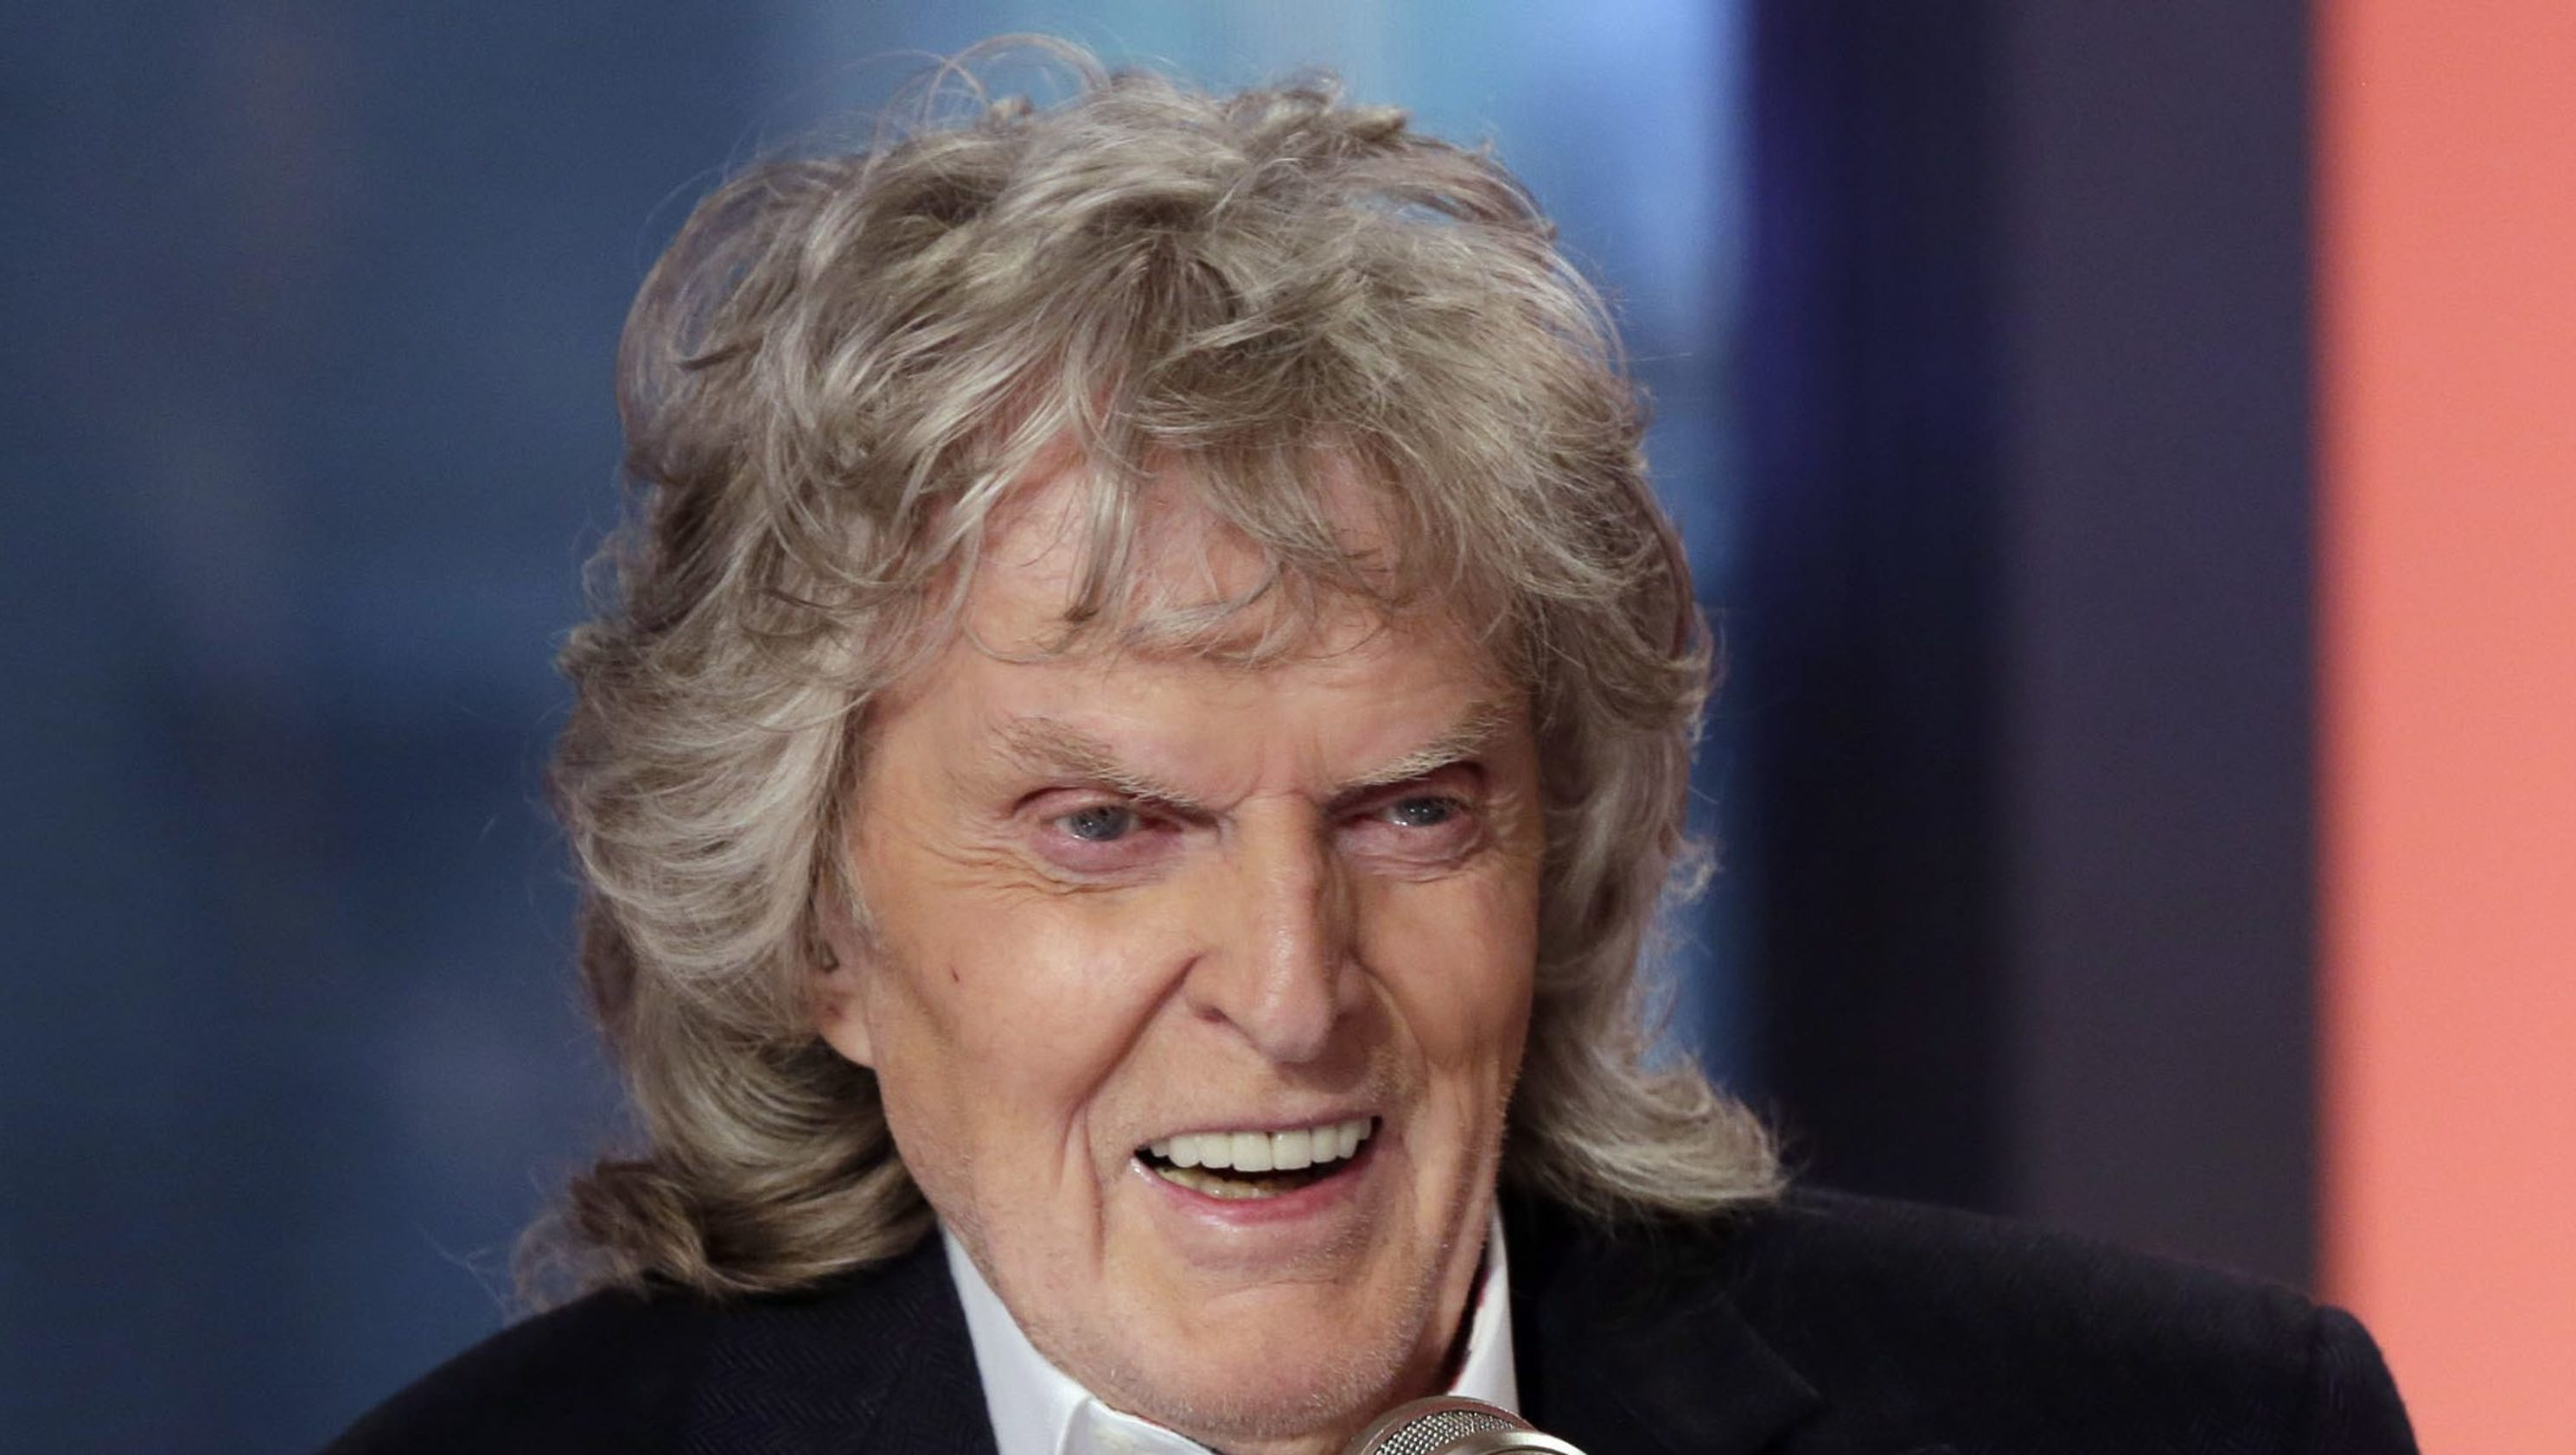 Imus, who used slurs about Rutgers team, ends show